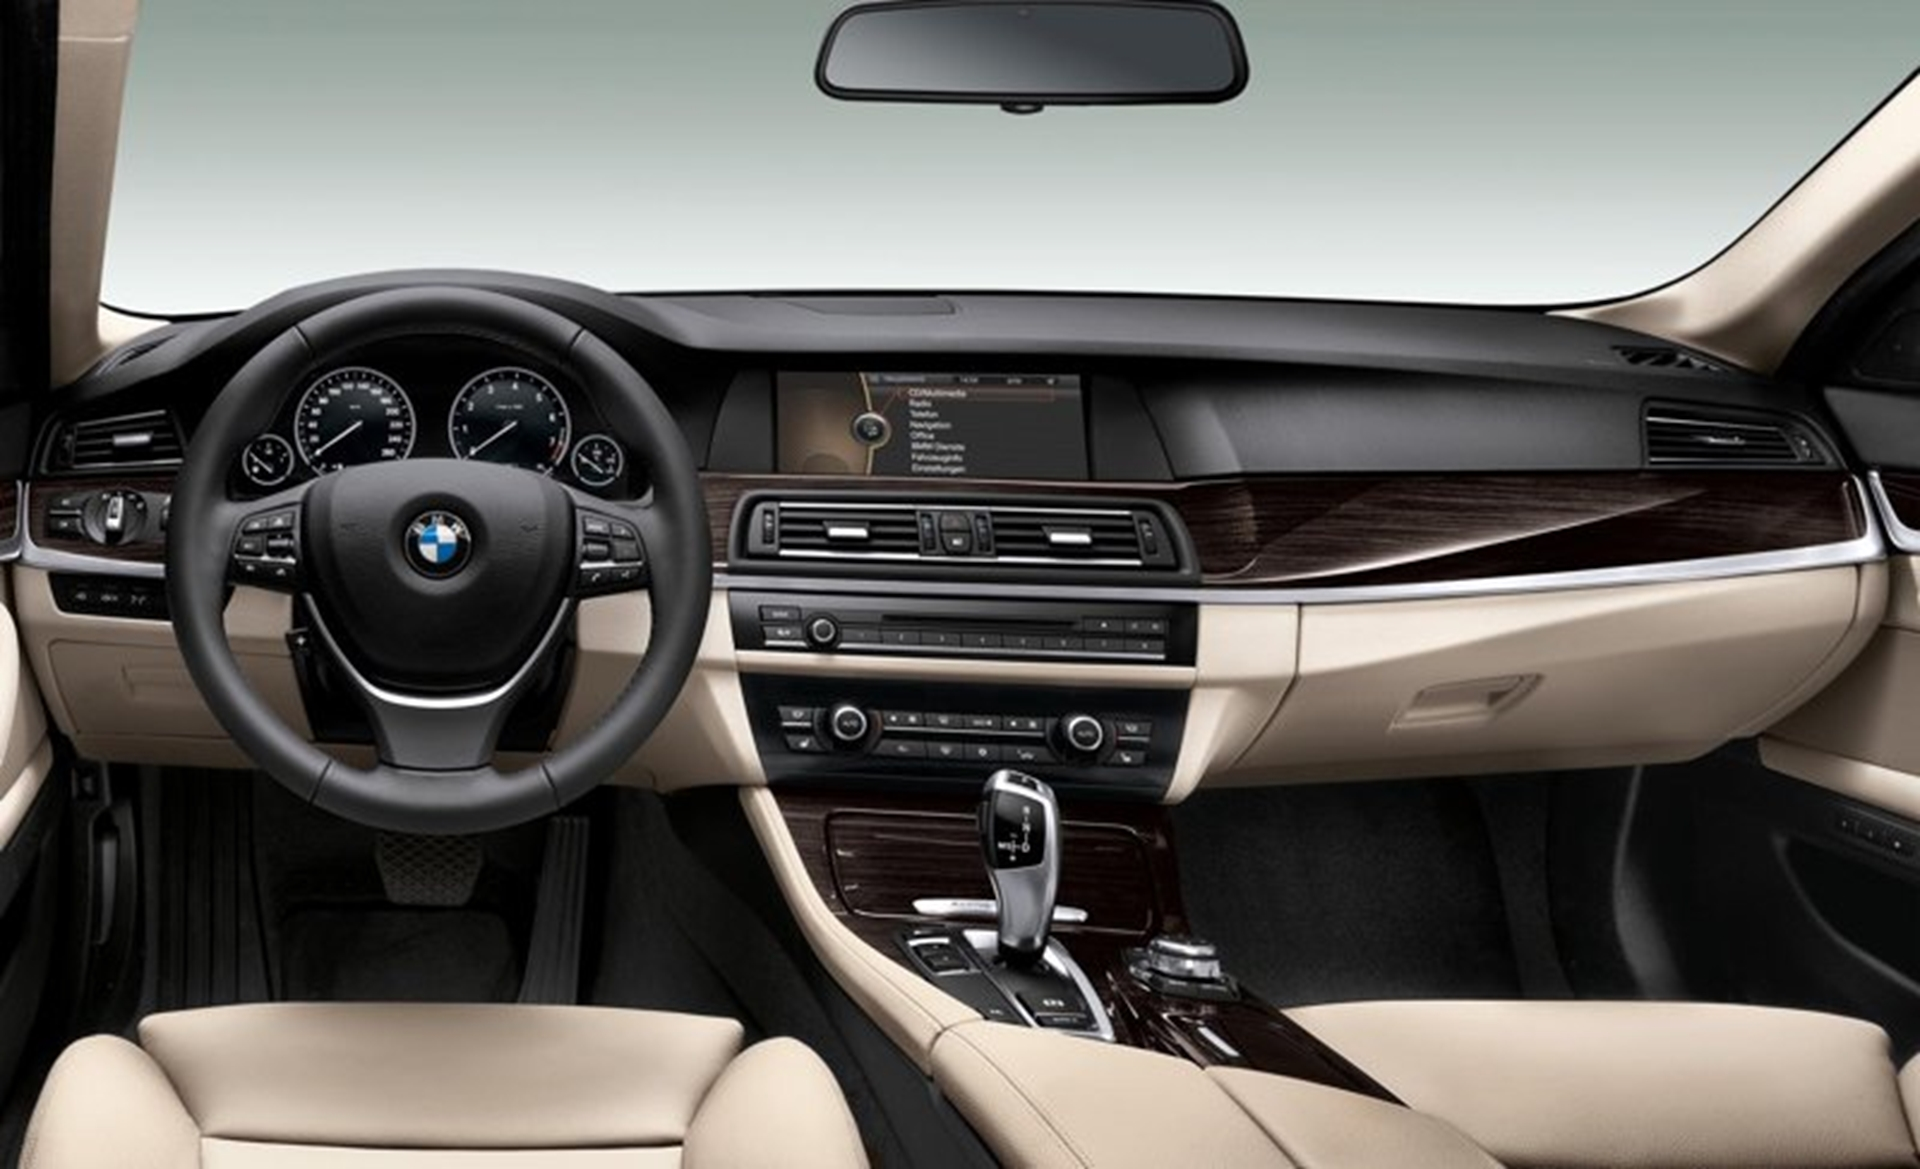 BMW Hybrid Dashboard